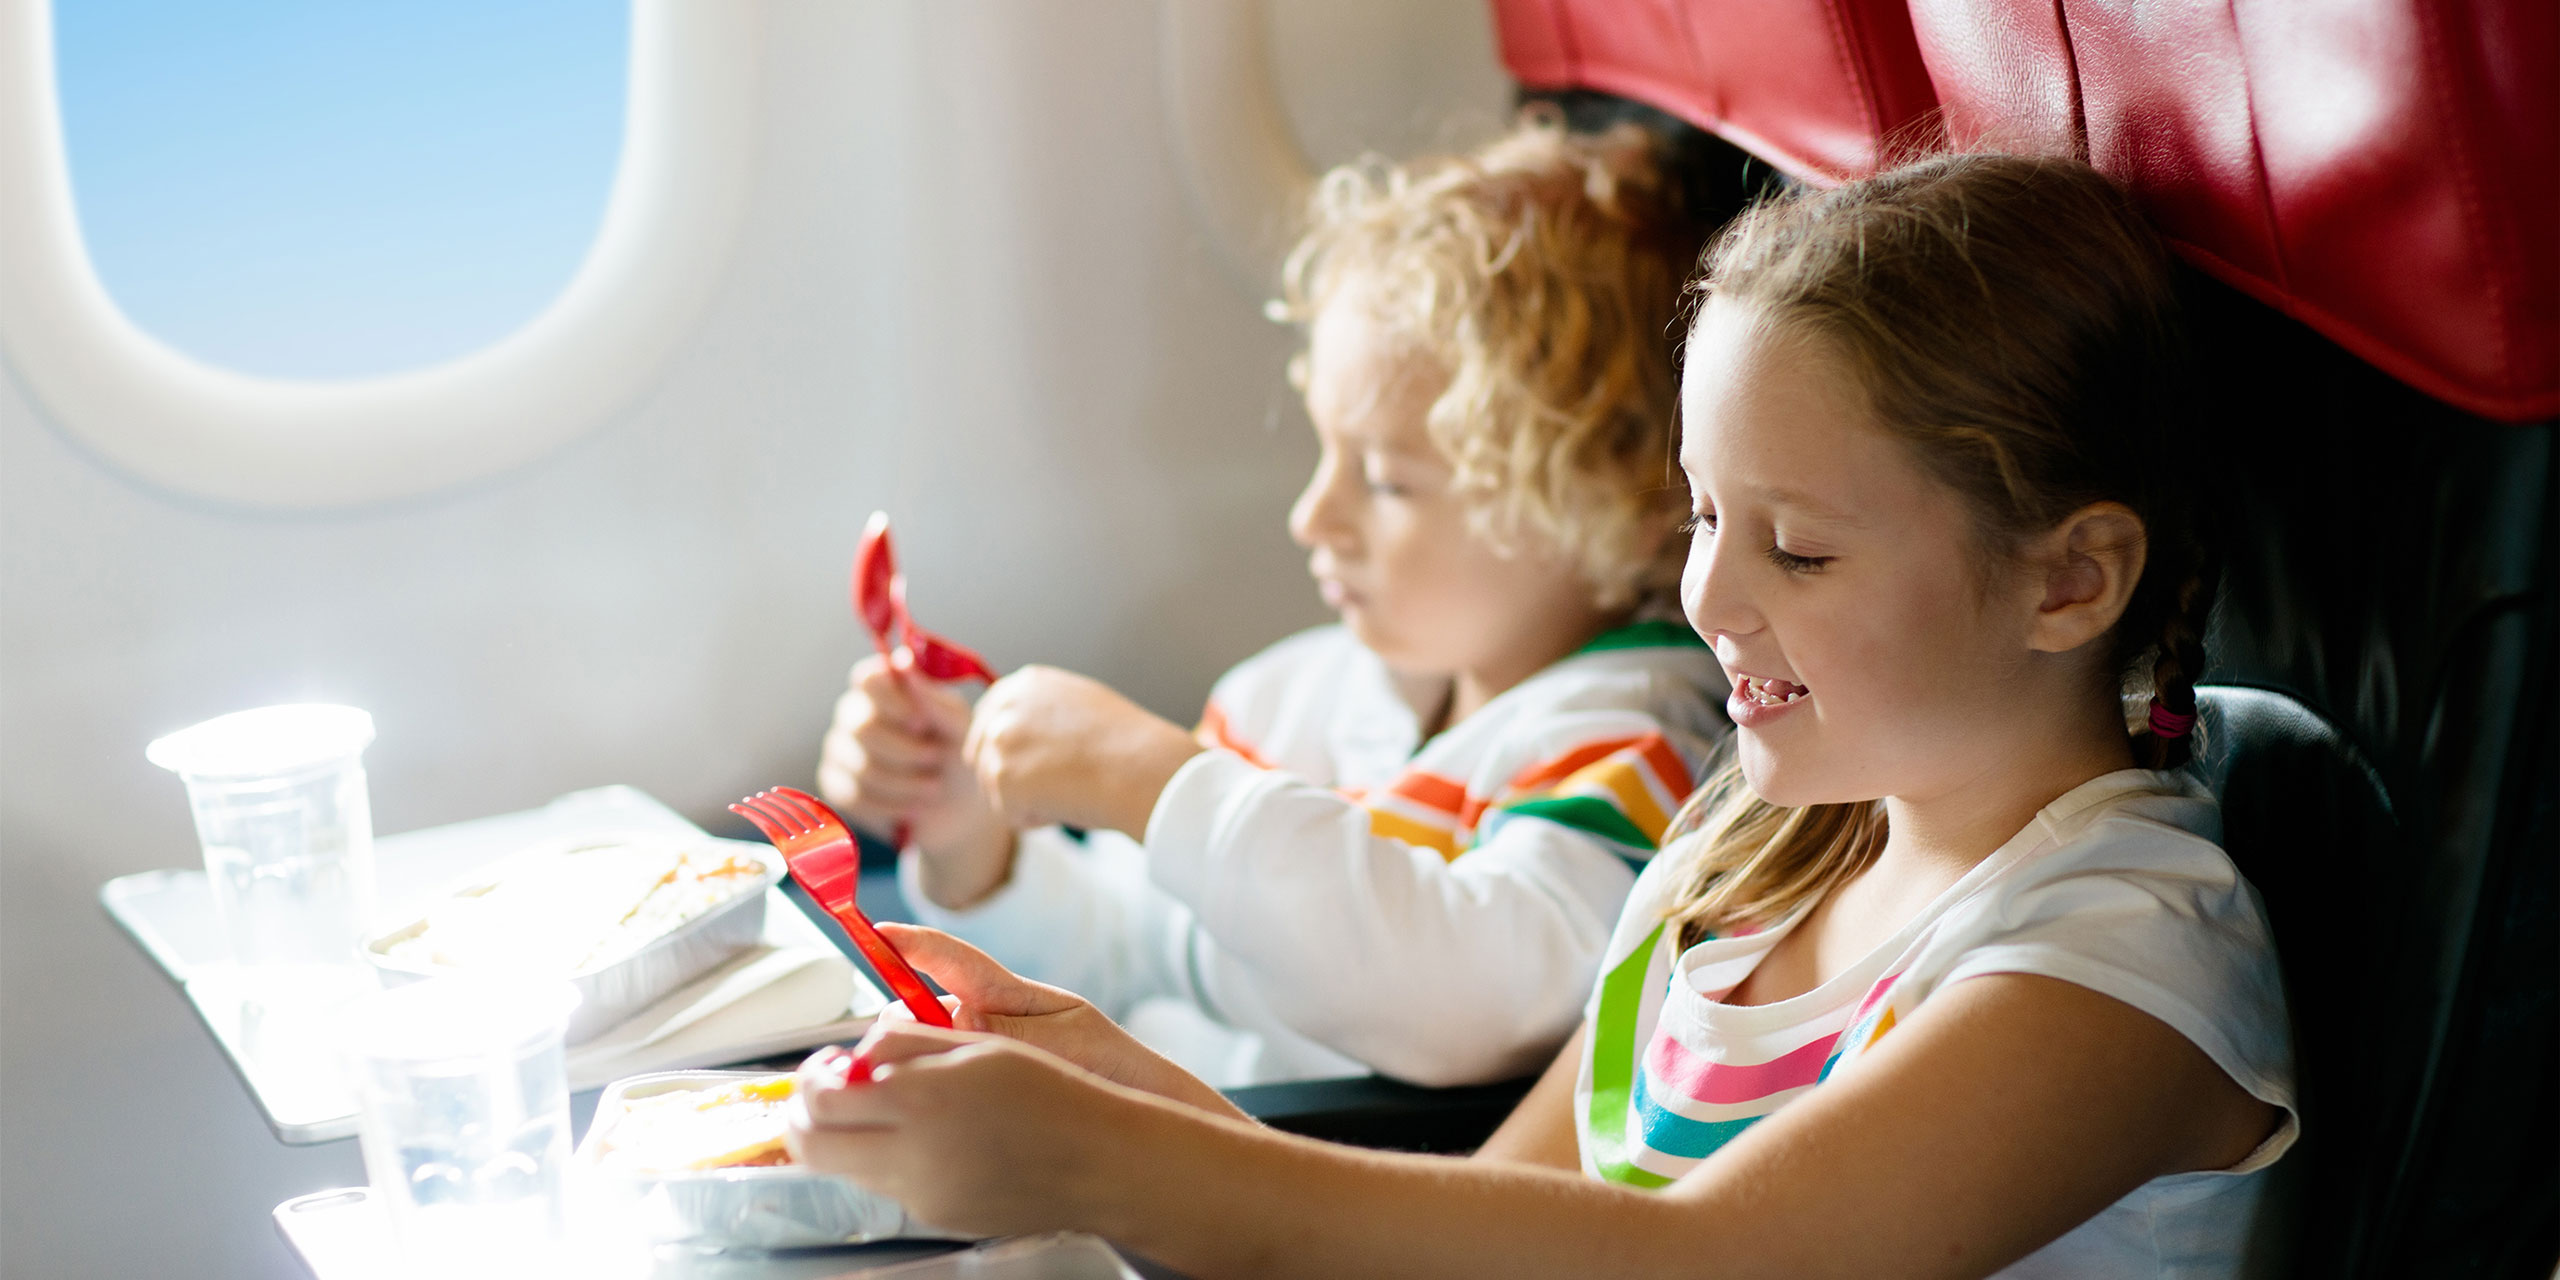 Kids Eating Snacks On A Plane; Courtesy of FamVeld/Shutterstock.com